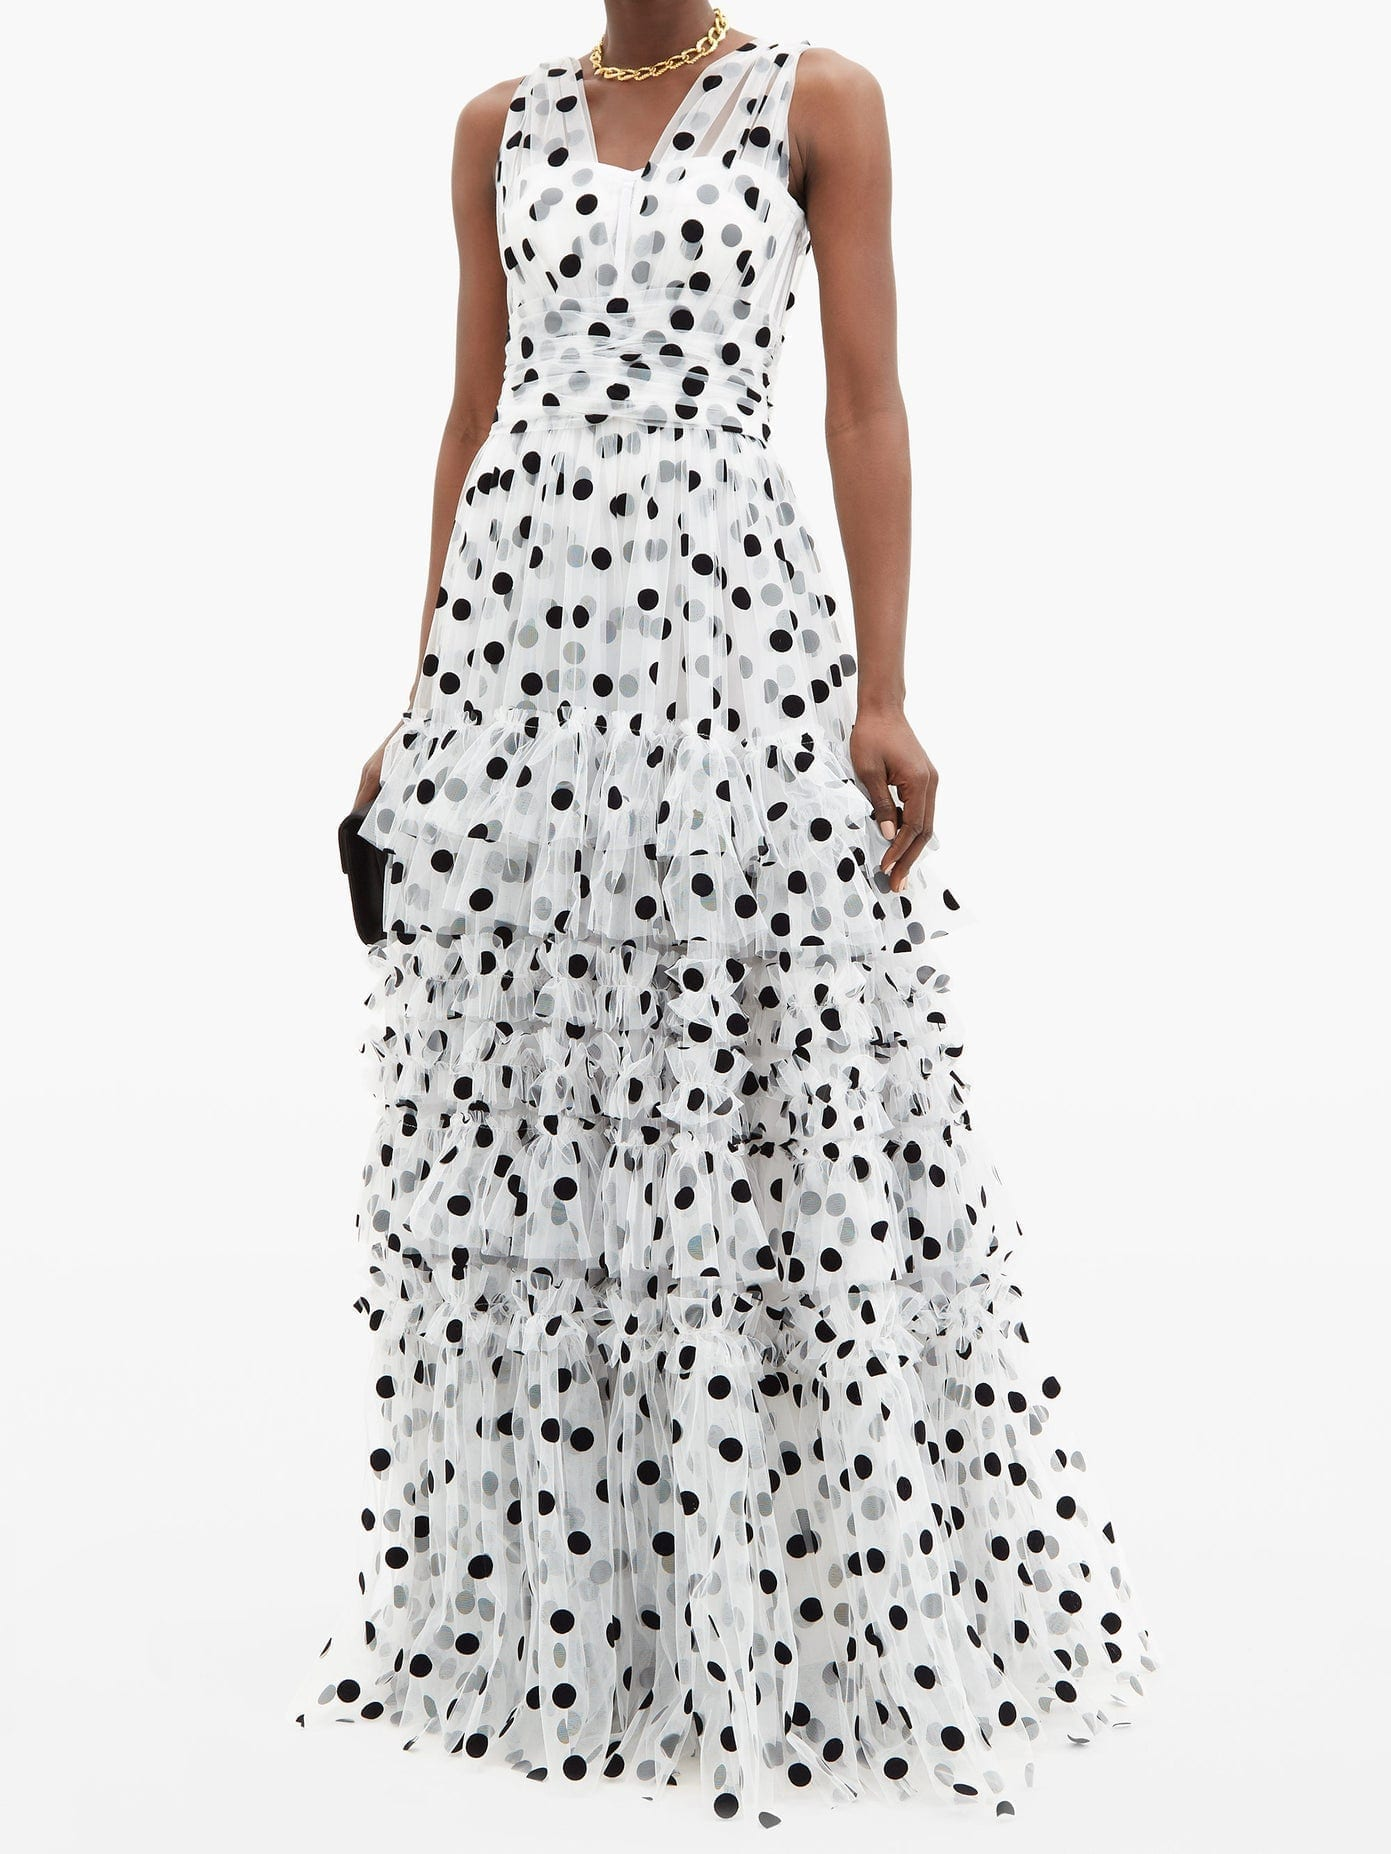 DOLCE & GABBANA Tiered Polka-dot Tulle Gown